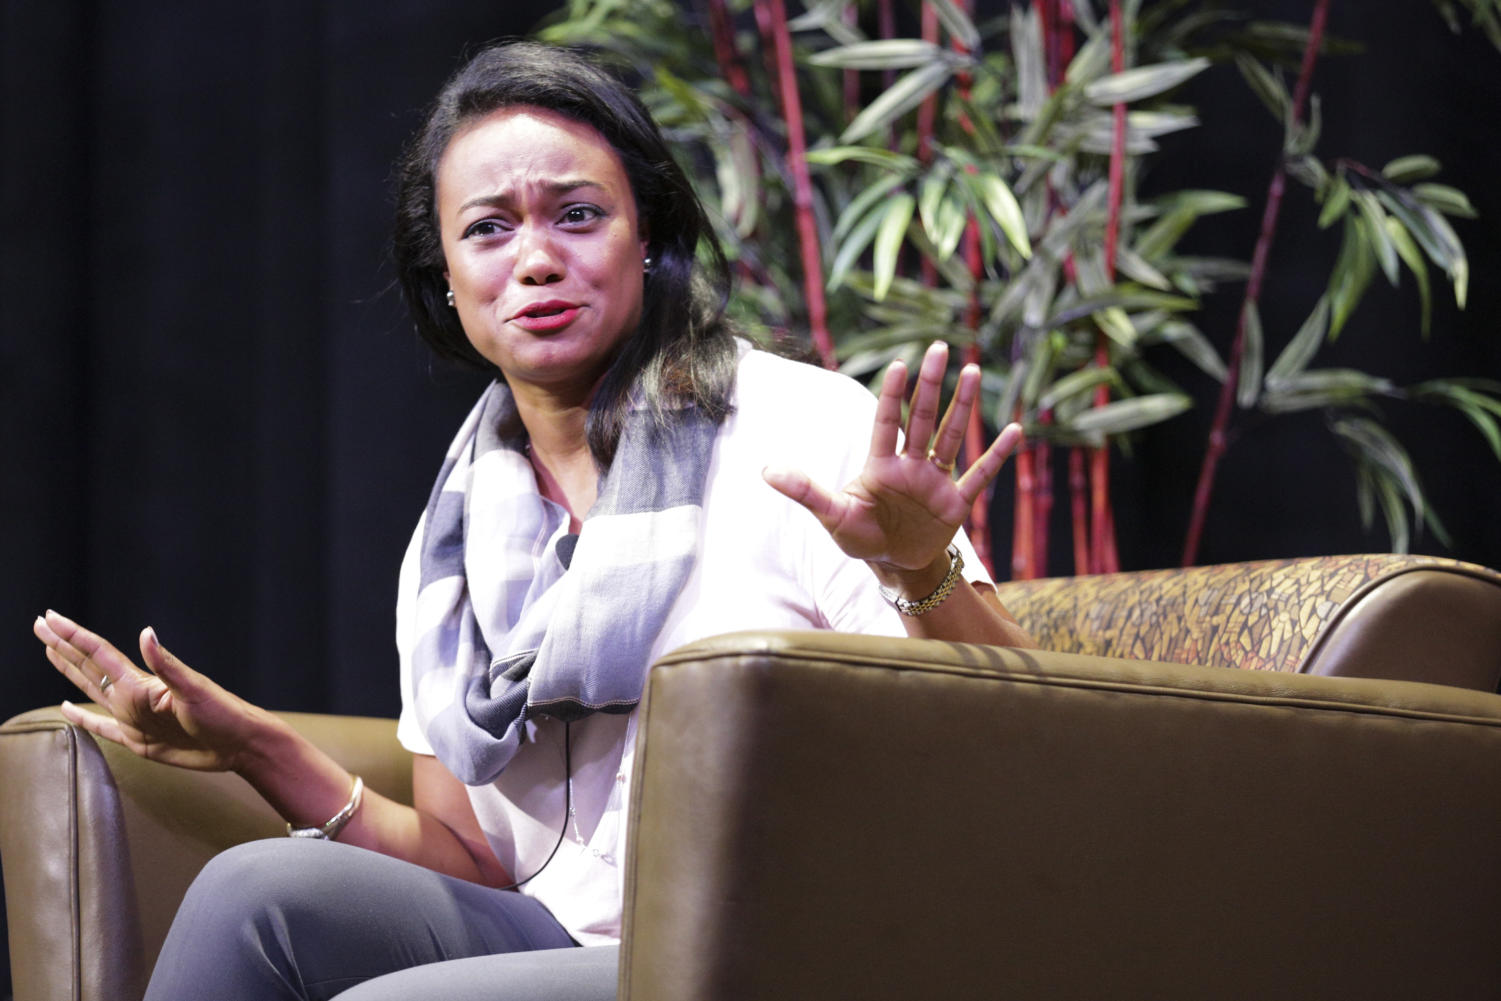 """The Fresh Prince of Bel-Air"" actor Tatyana Ali spoke to a crowd of more than 50 people in the William Pitt Union Assembly Room on Sunday."